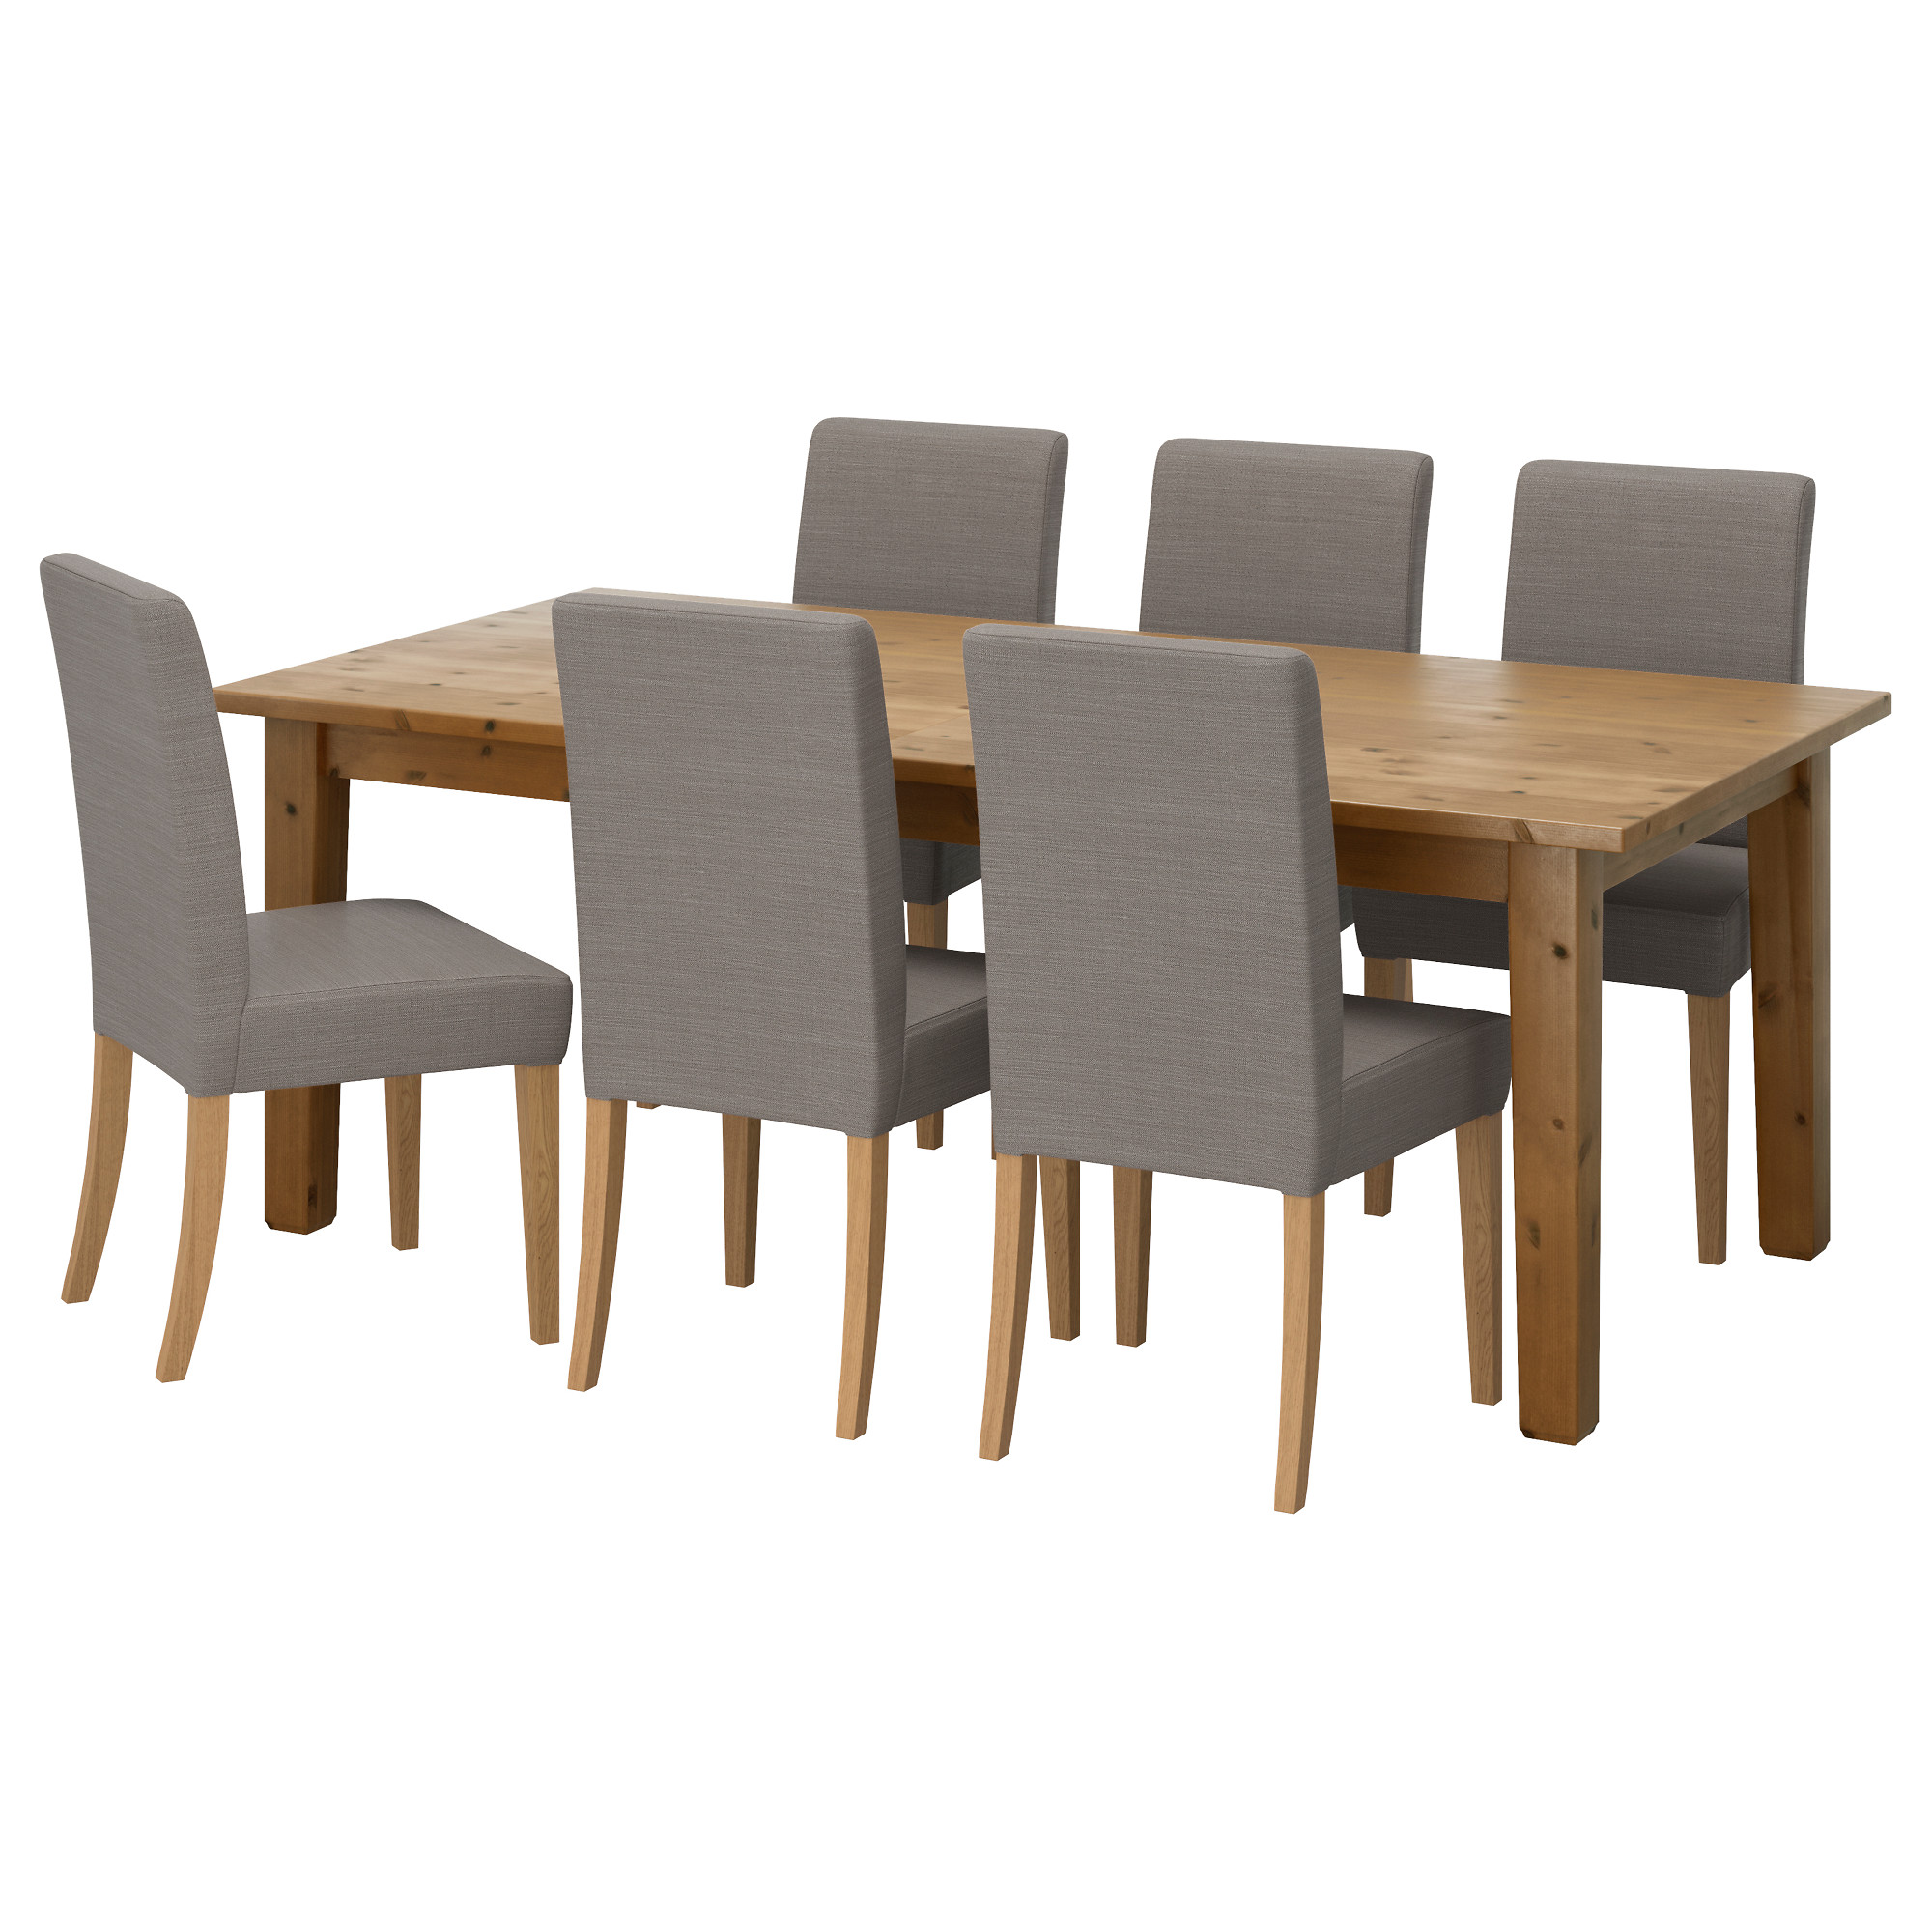 Dining table with chairs - Storn S Henriksdal Table And 6 Chairs Antique Stain Nolhaga Gray Beige Length